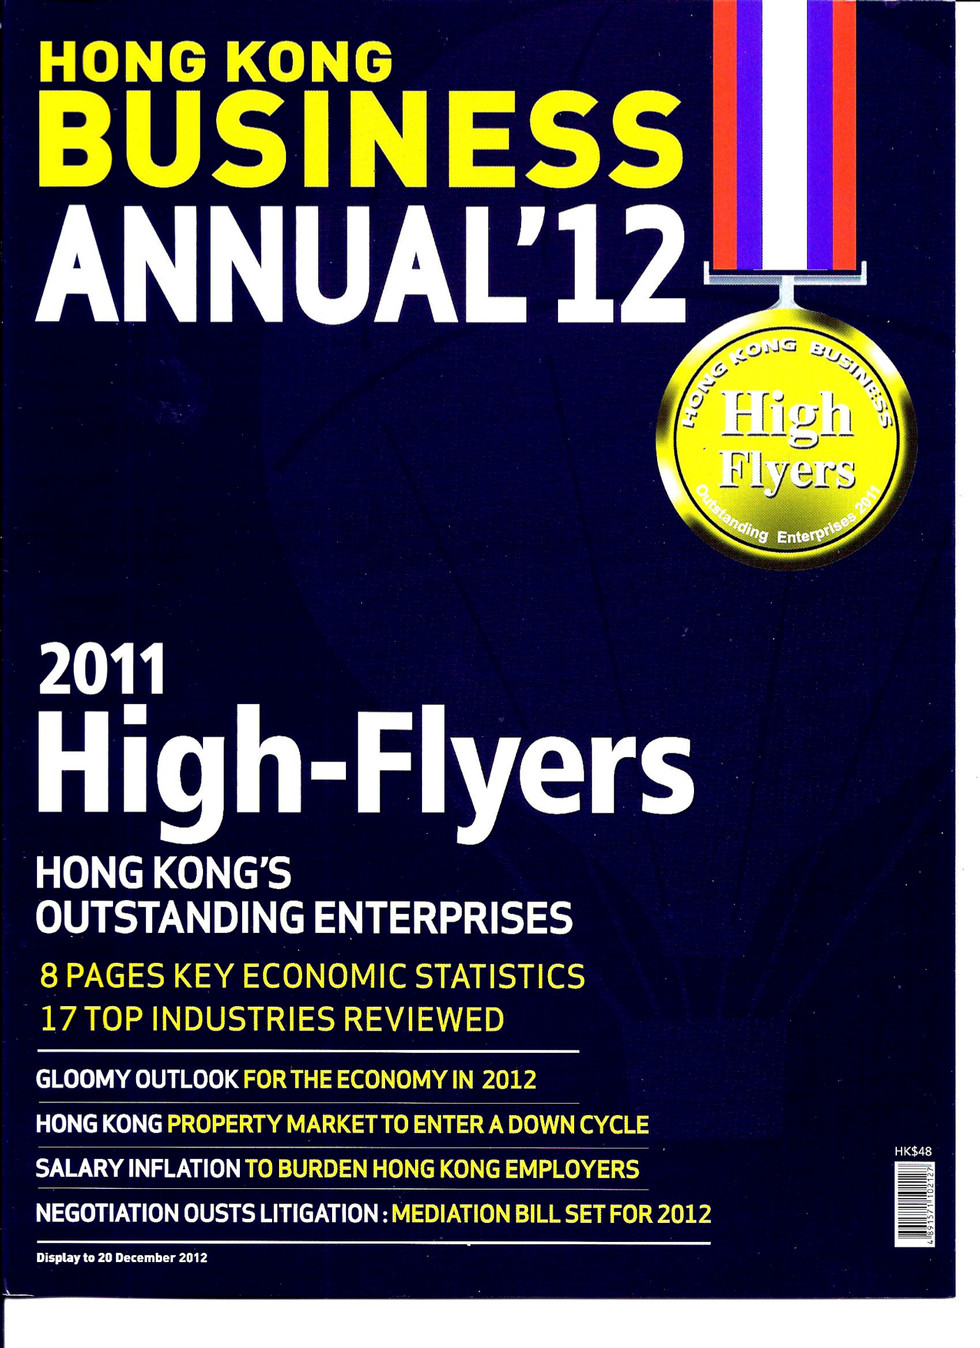 HK Business High Flyers Award!